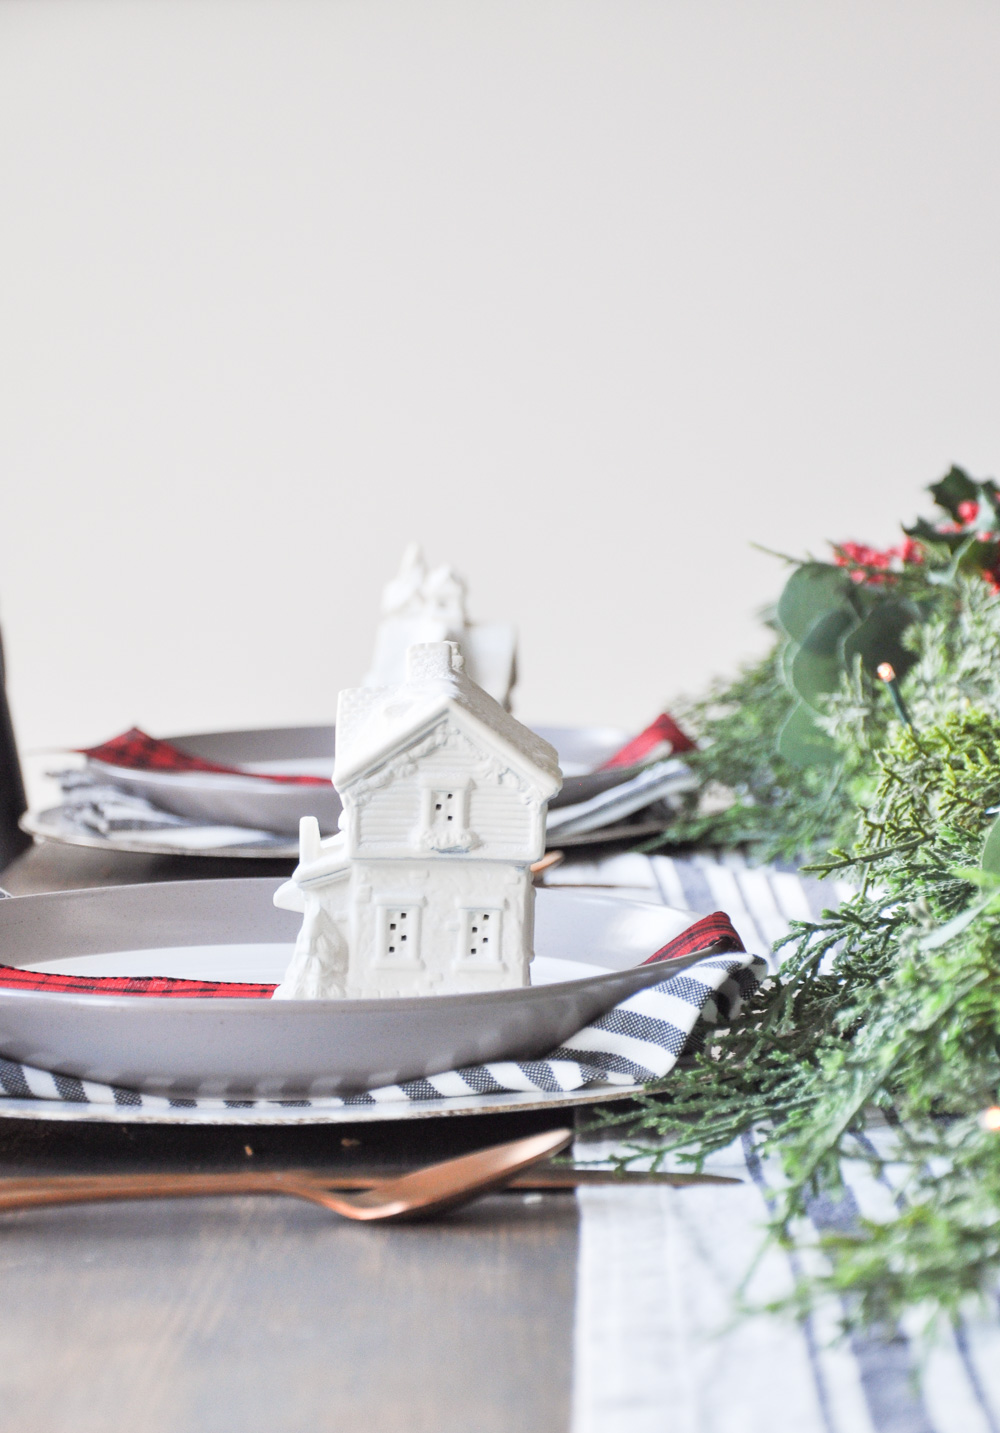 This unique Christmas Village Holiday Tablescape provides a simple way to bring a little Christmas Cheer to your home using things you likely have on hand!